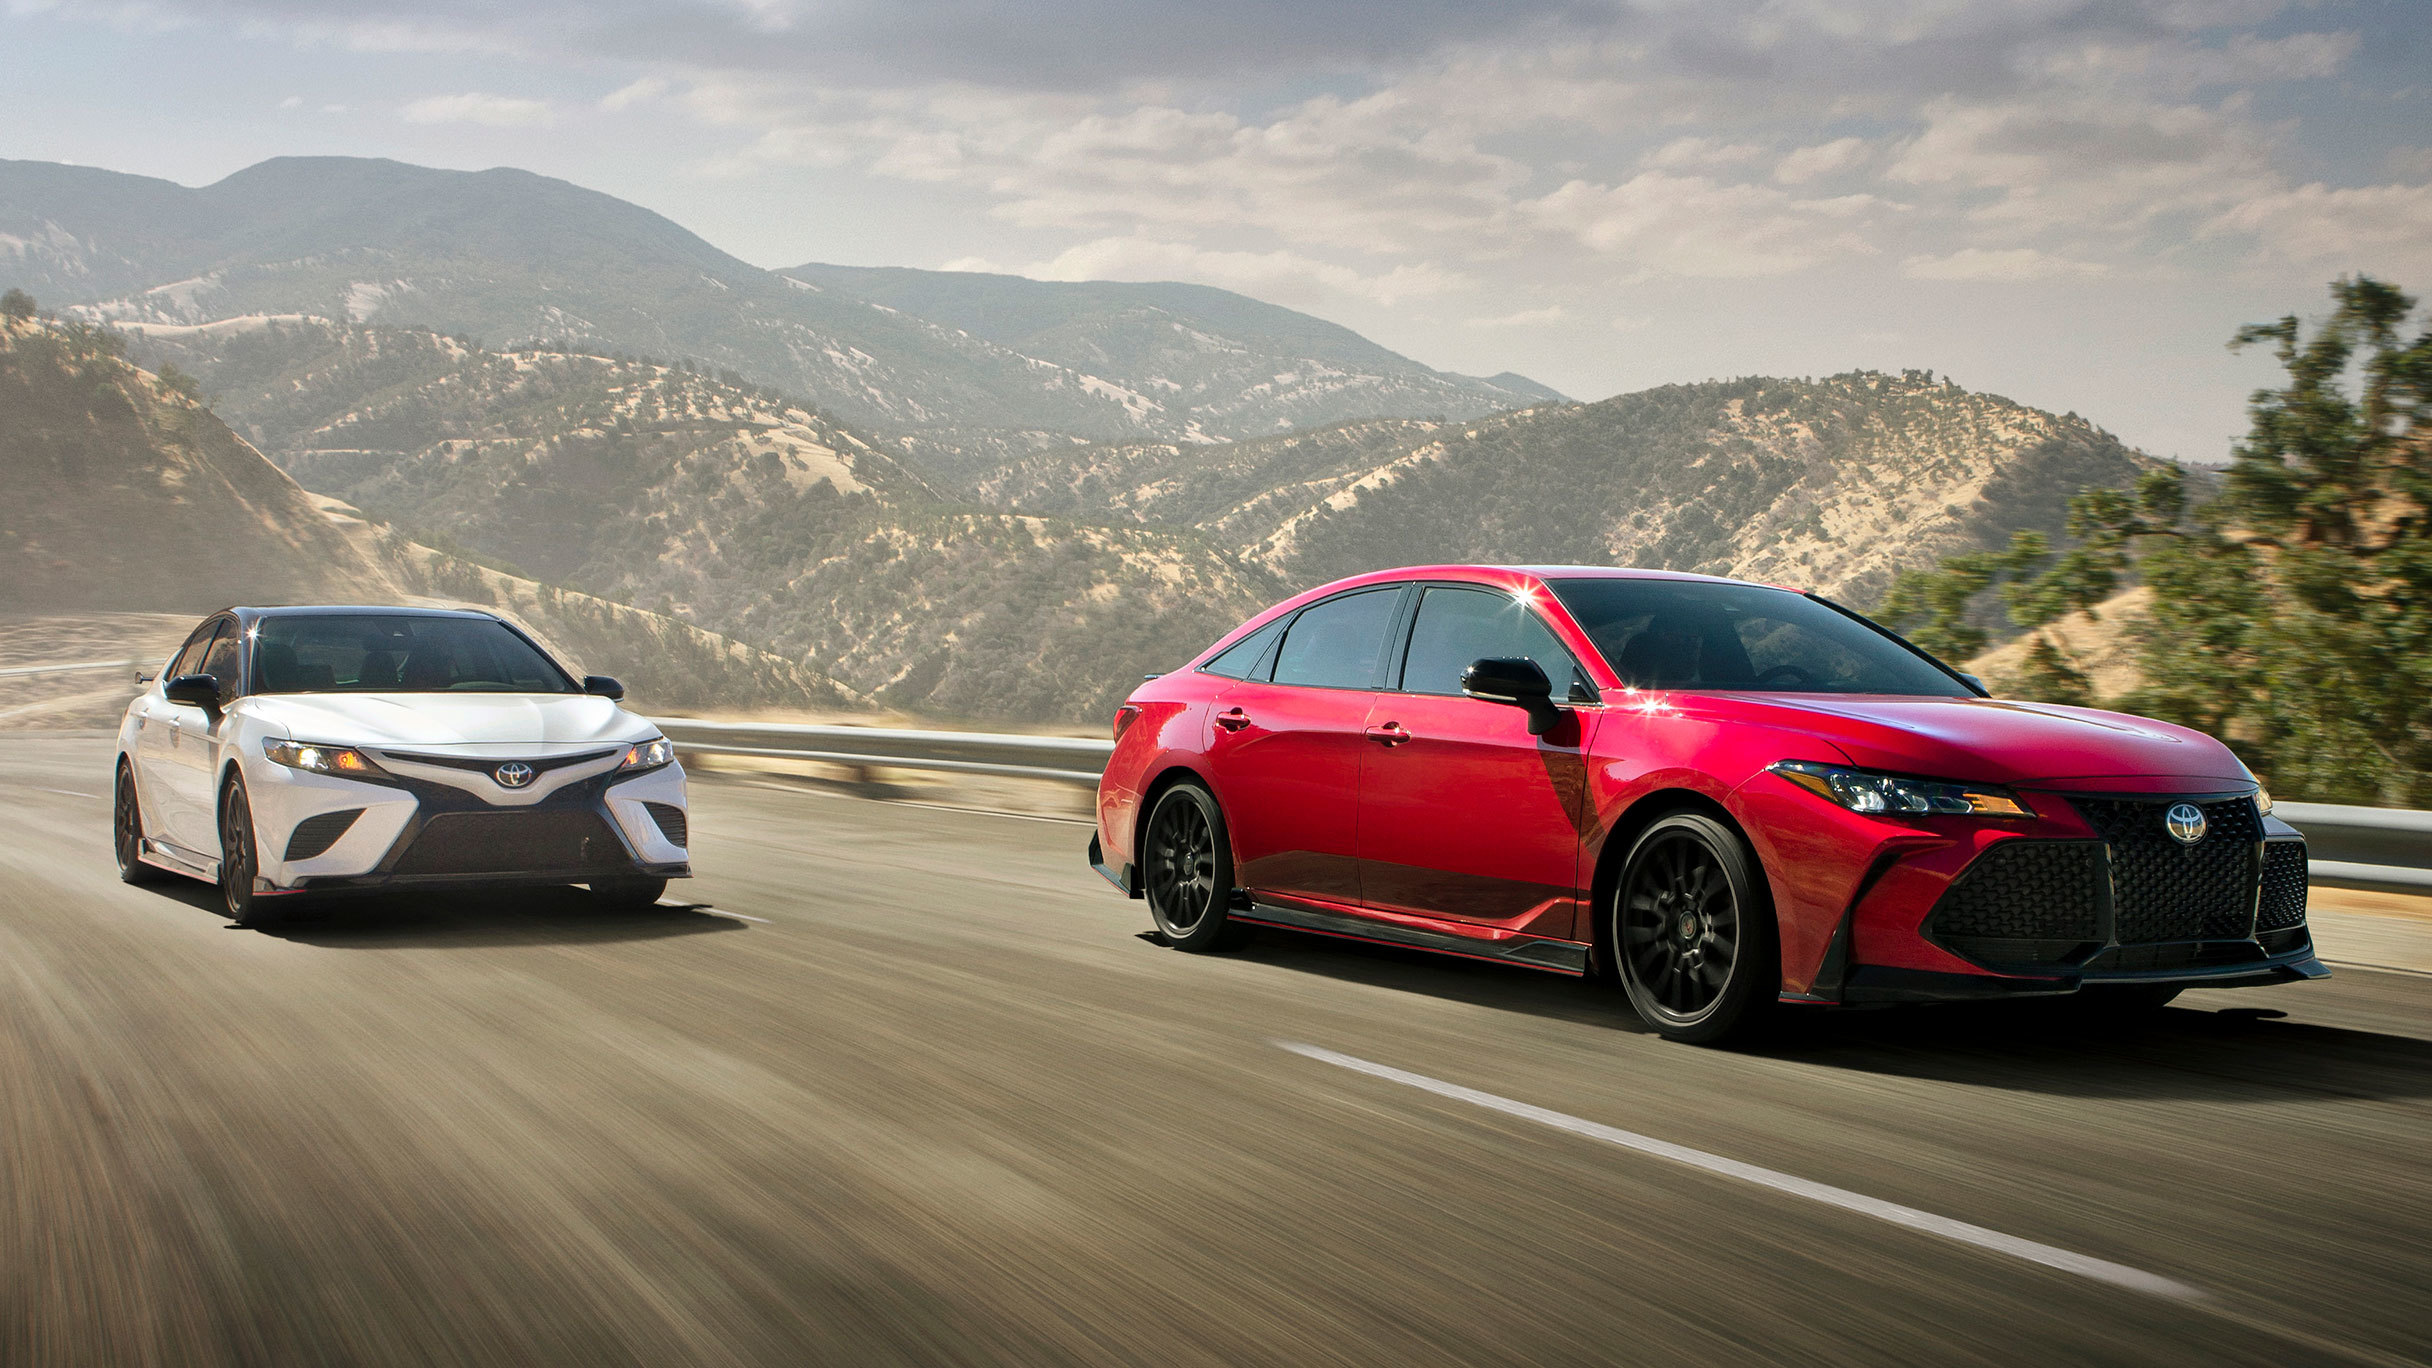 Toyota Certified Pre-Owned >> 2020 Toyota Avalon TRD priced at $43,255 | Autoblog